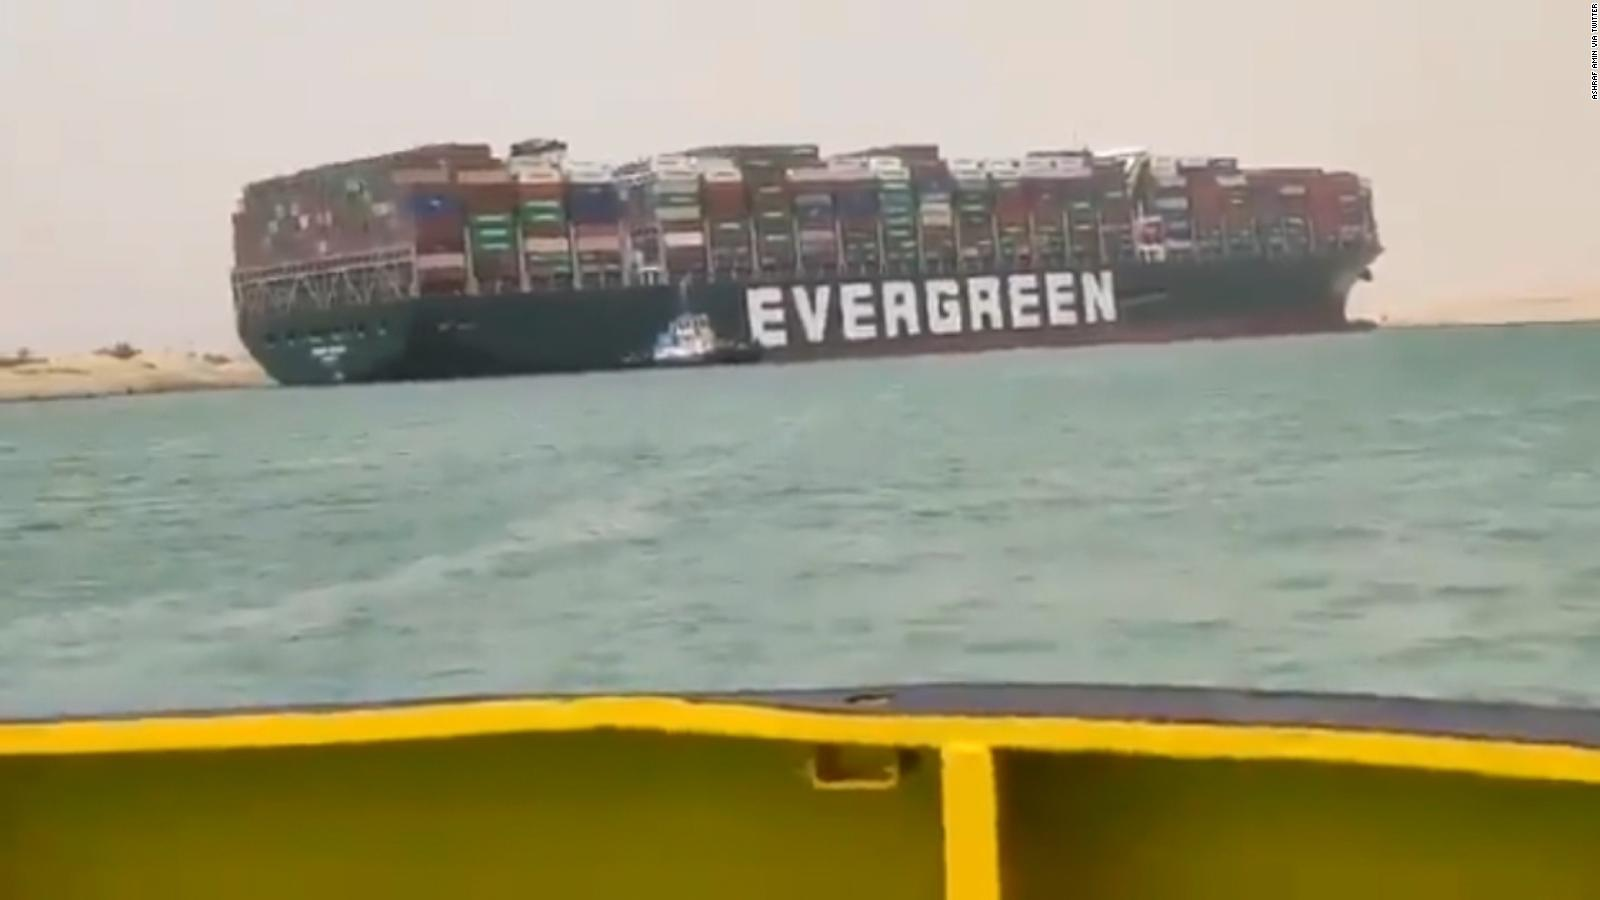 Dislodging huge ship stuck in Suez Canal at crucial stage